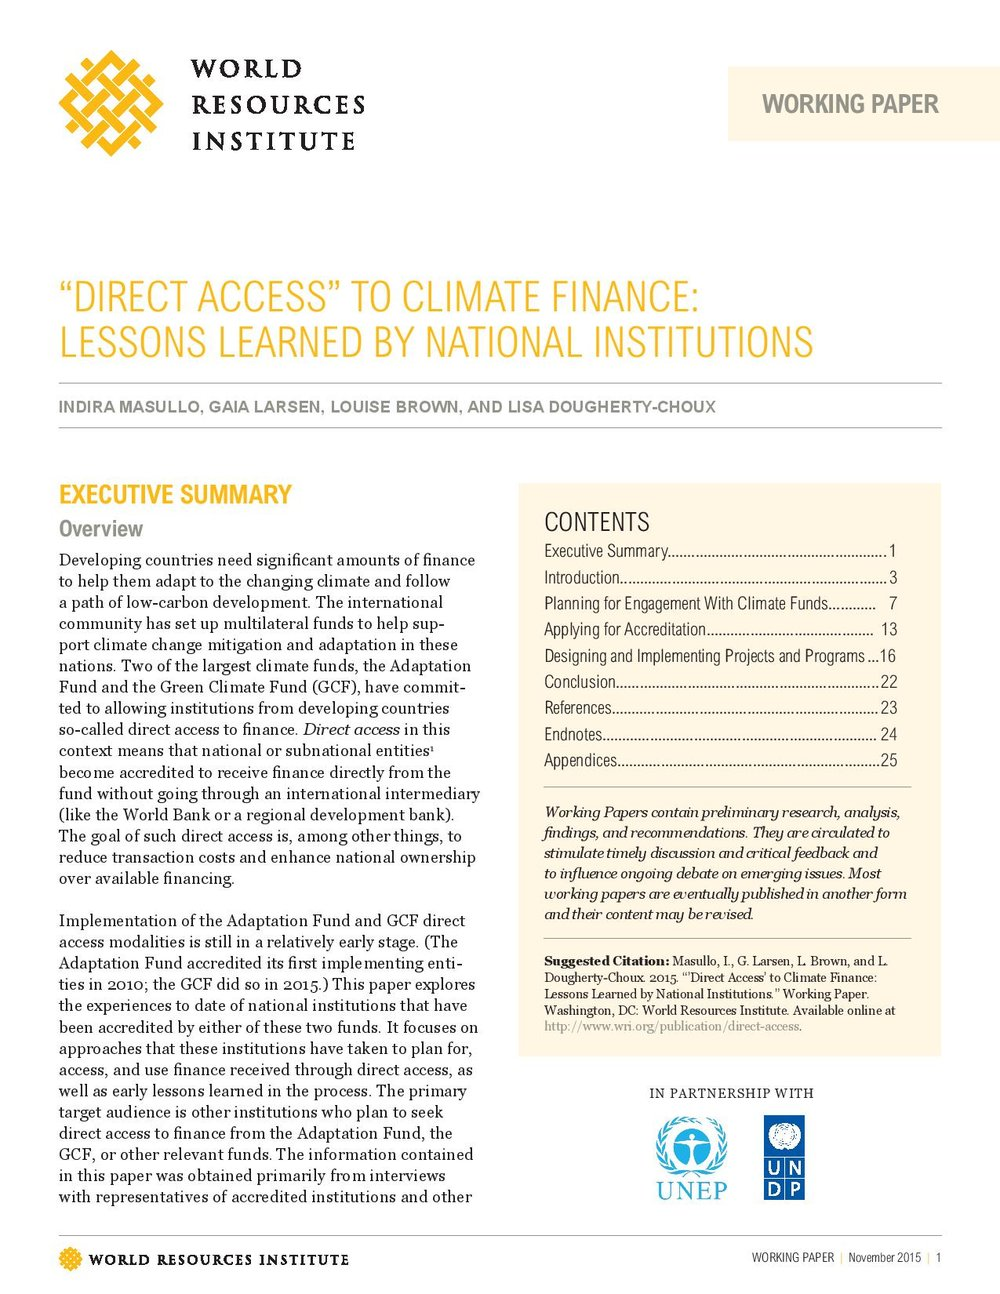 22DIRECT_ACCESS_TO_CLIMATE_FINANCE_LESSONS_LEARNED_BY_NATIONAL_INSTITUTIONS-page-001.jpg